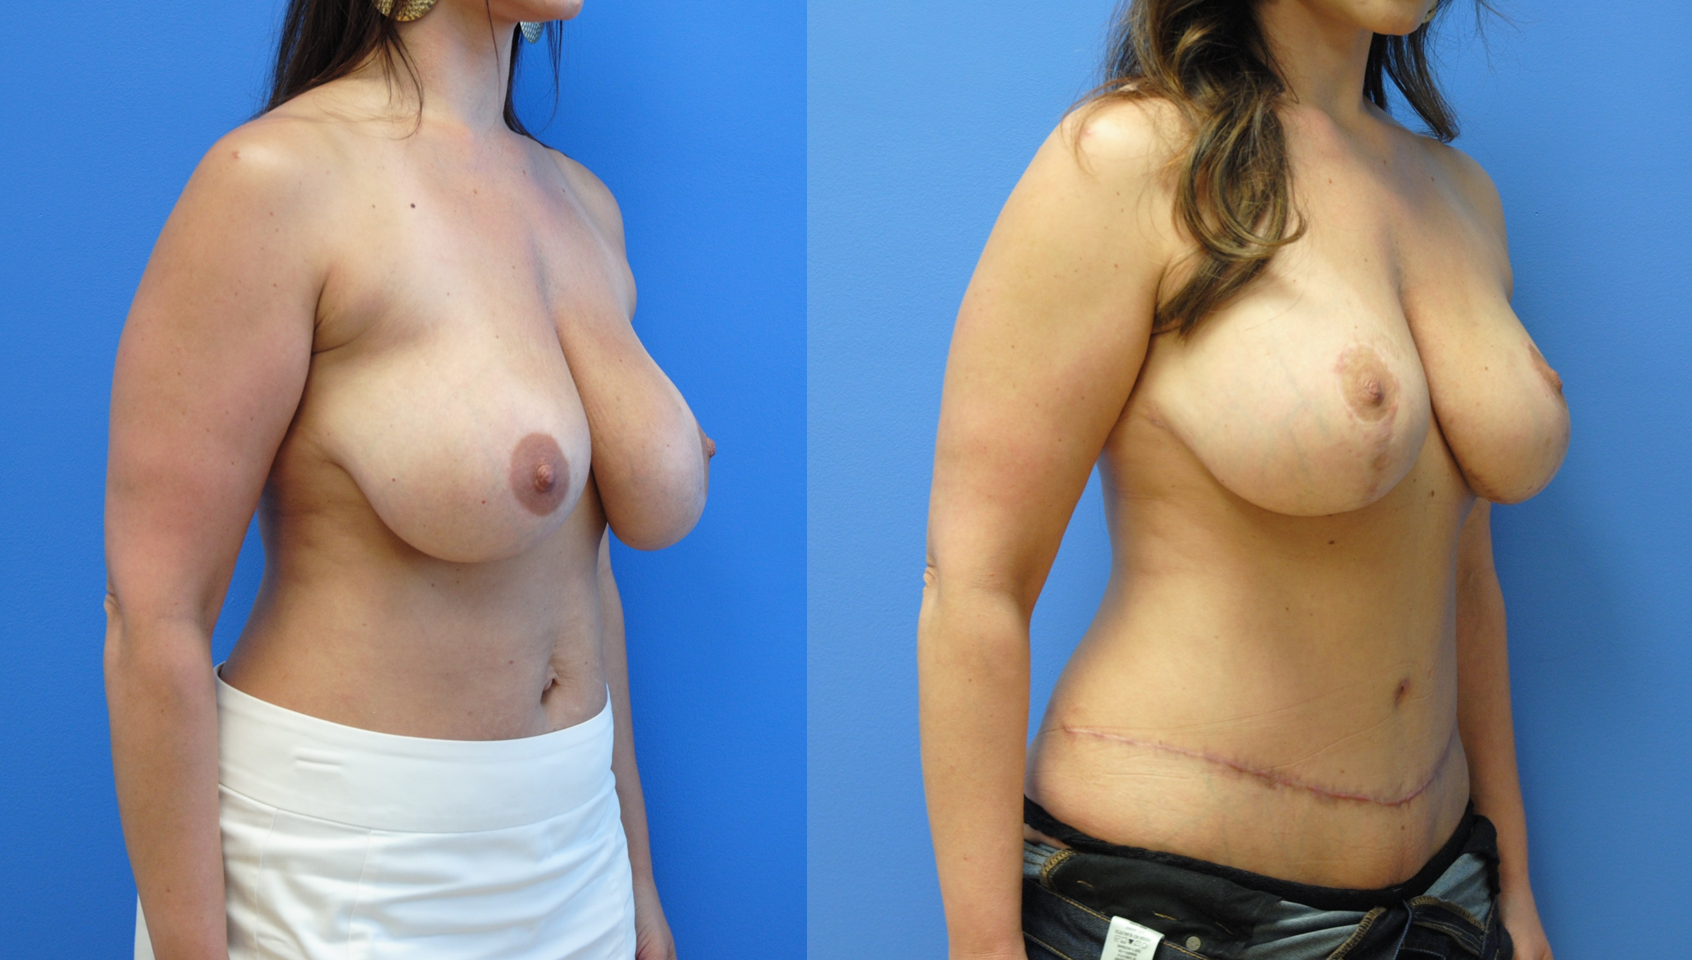 Abdominoplasty-Mommy-Makeover-Newport-Beach-Tummy-Tuck-Brian-Dickinson-M.D.